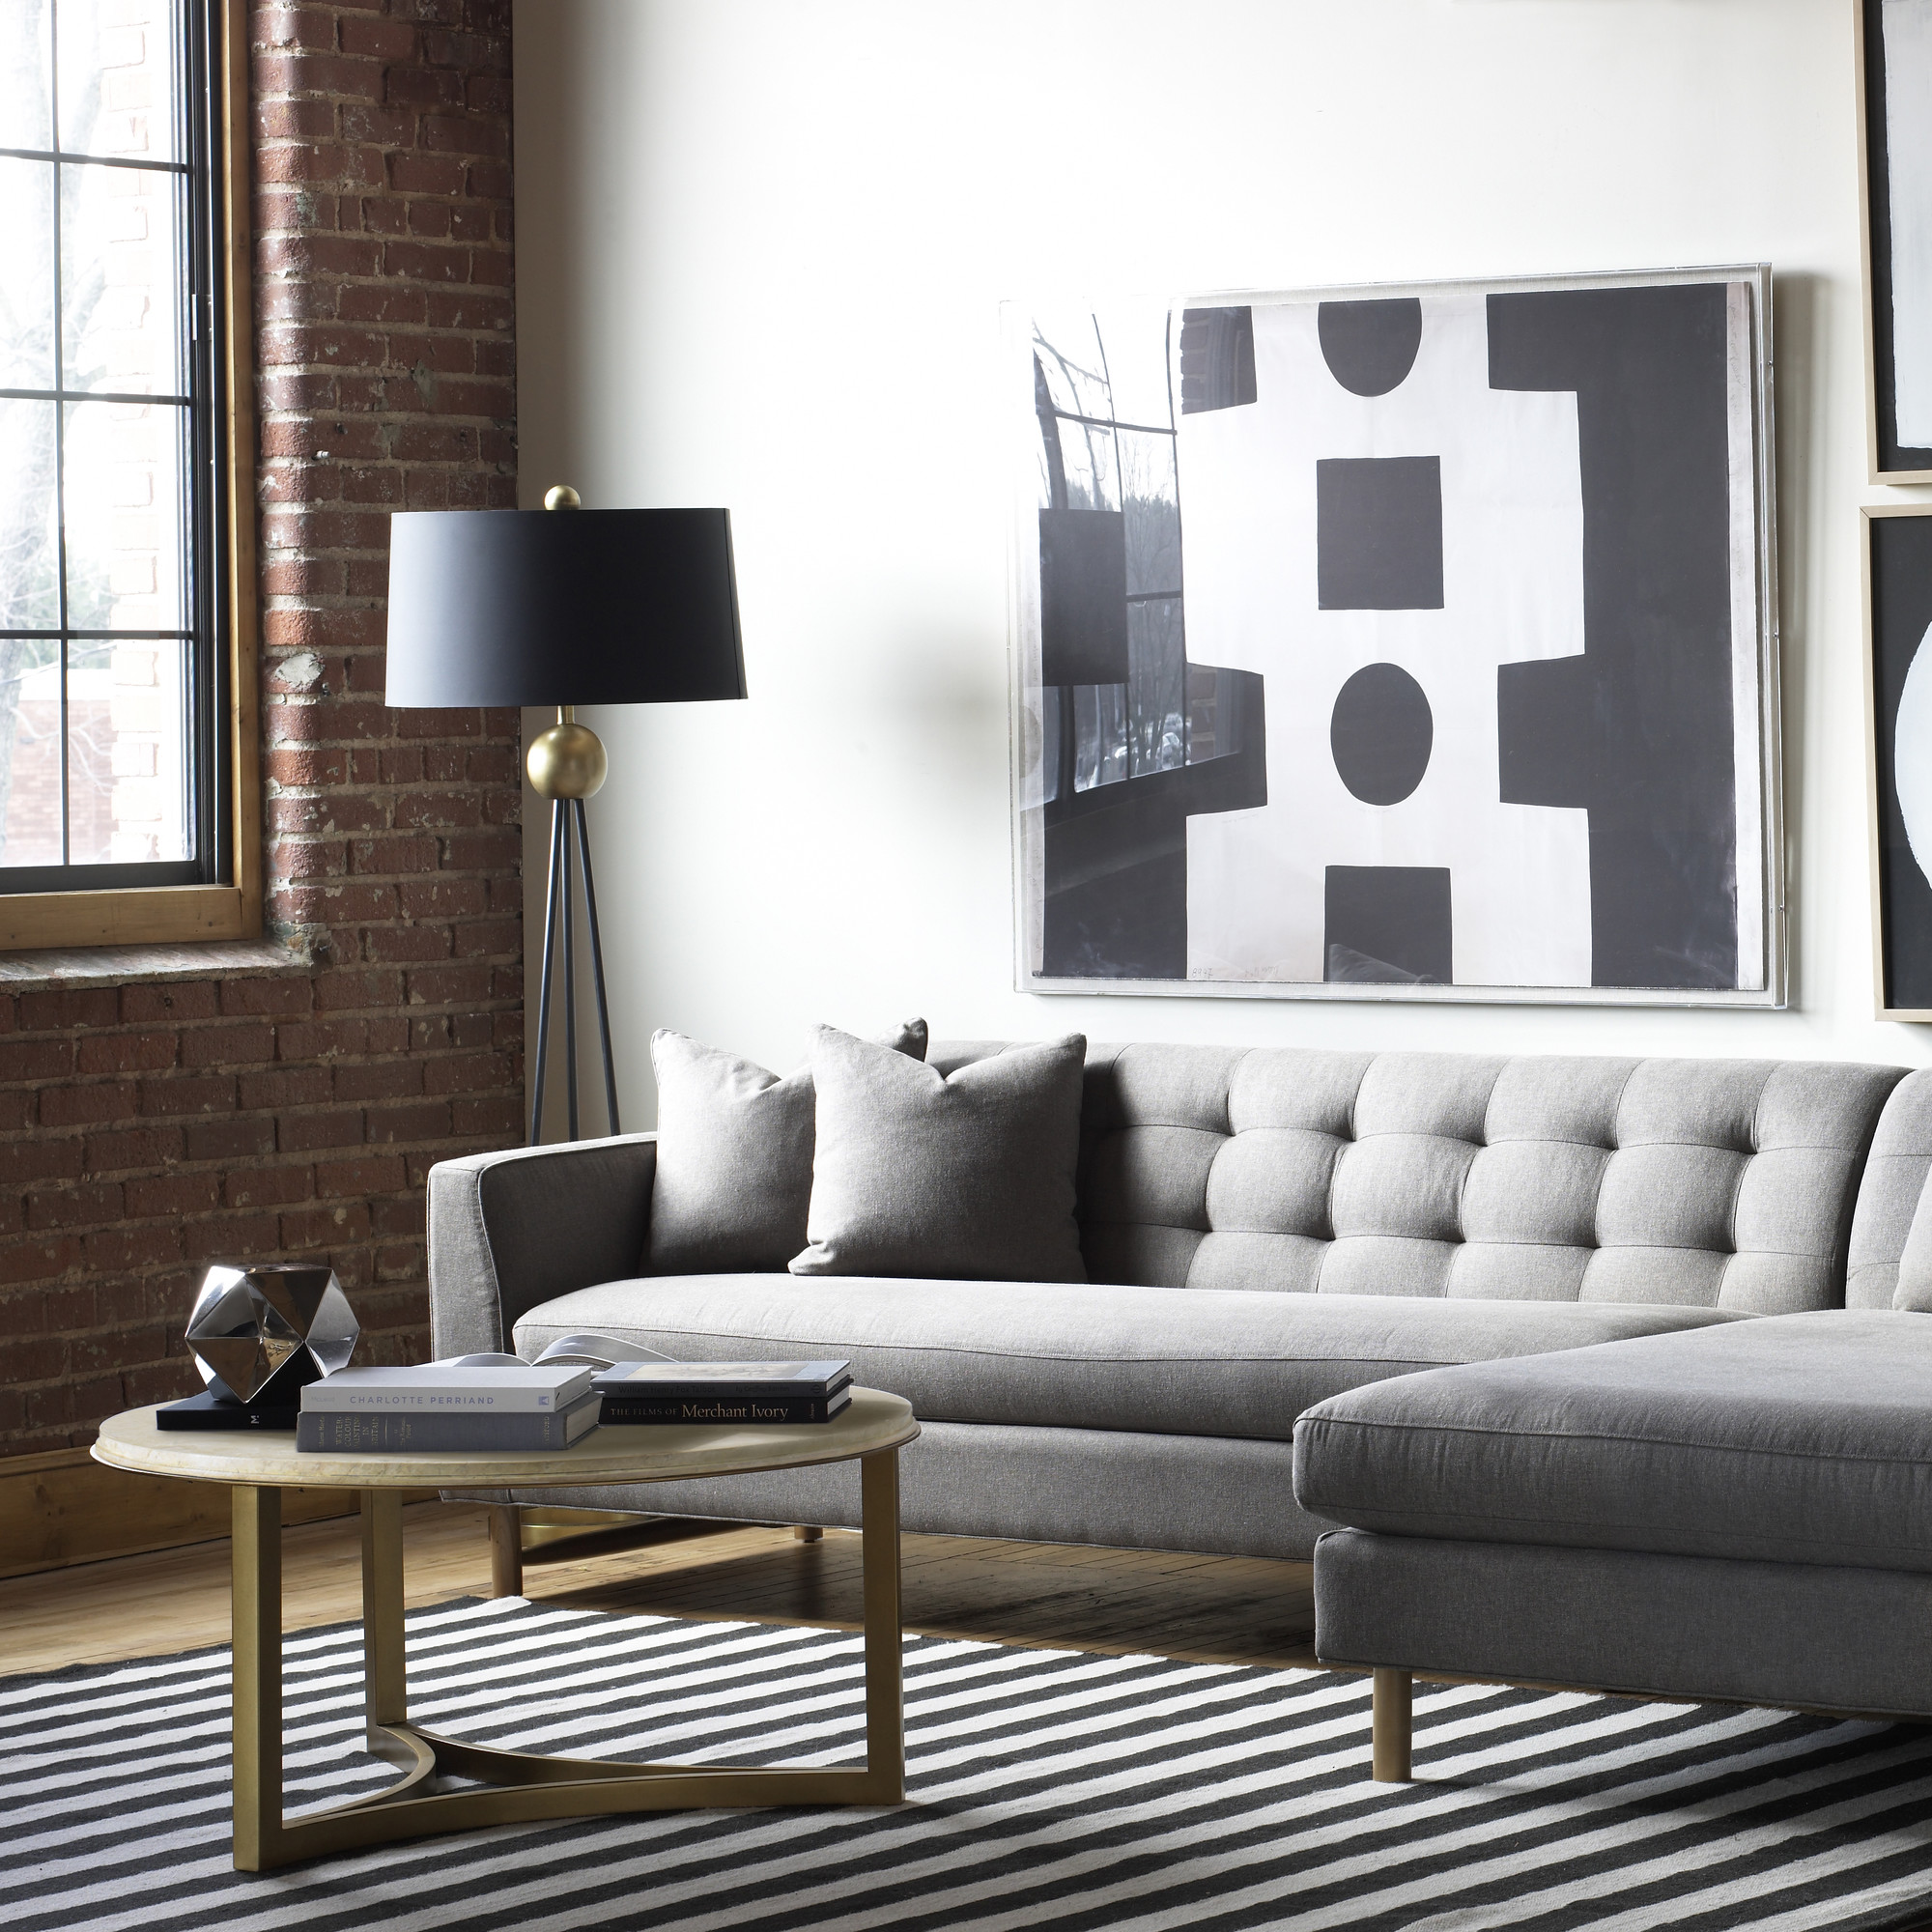 amazing dwellstudio with black stand lamps and gray sofa plus round table